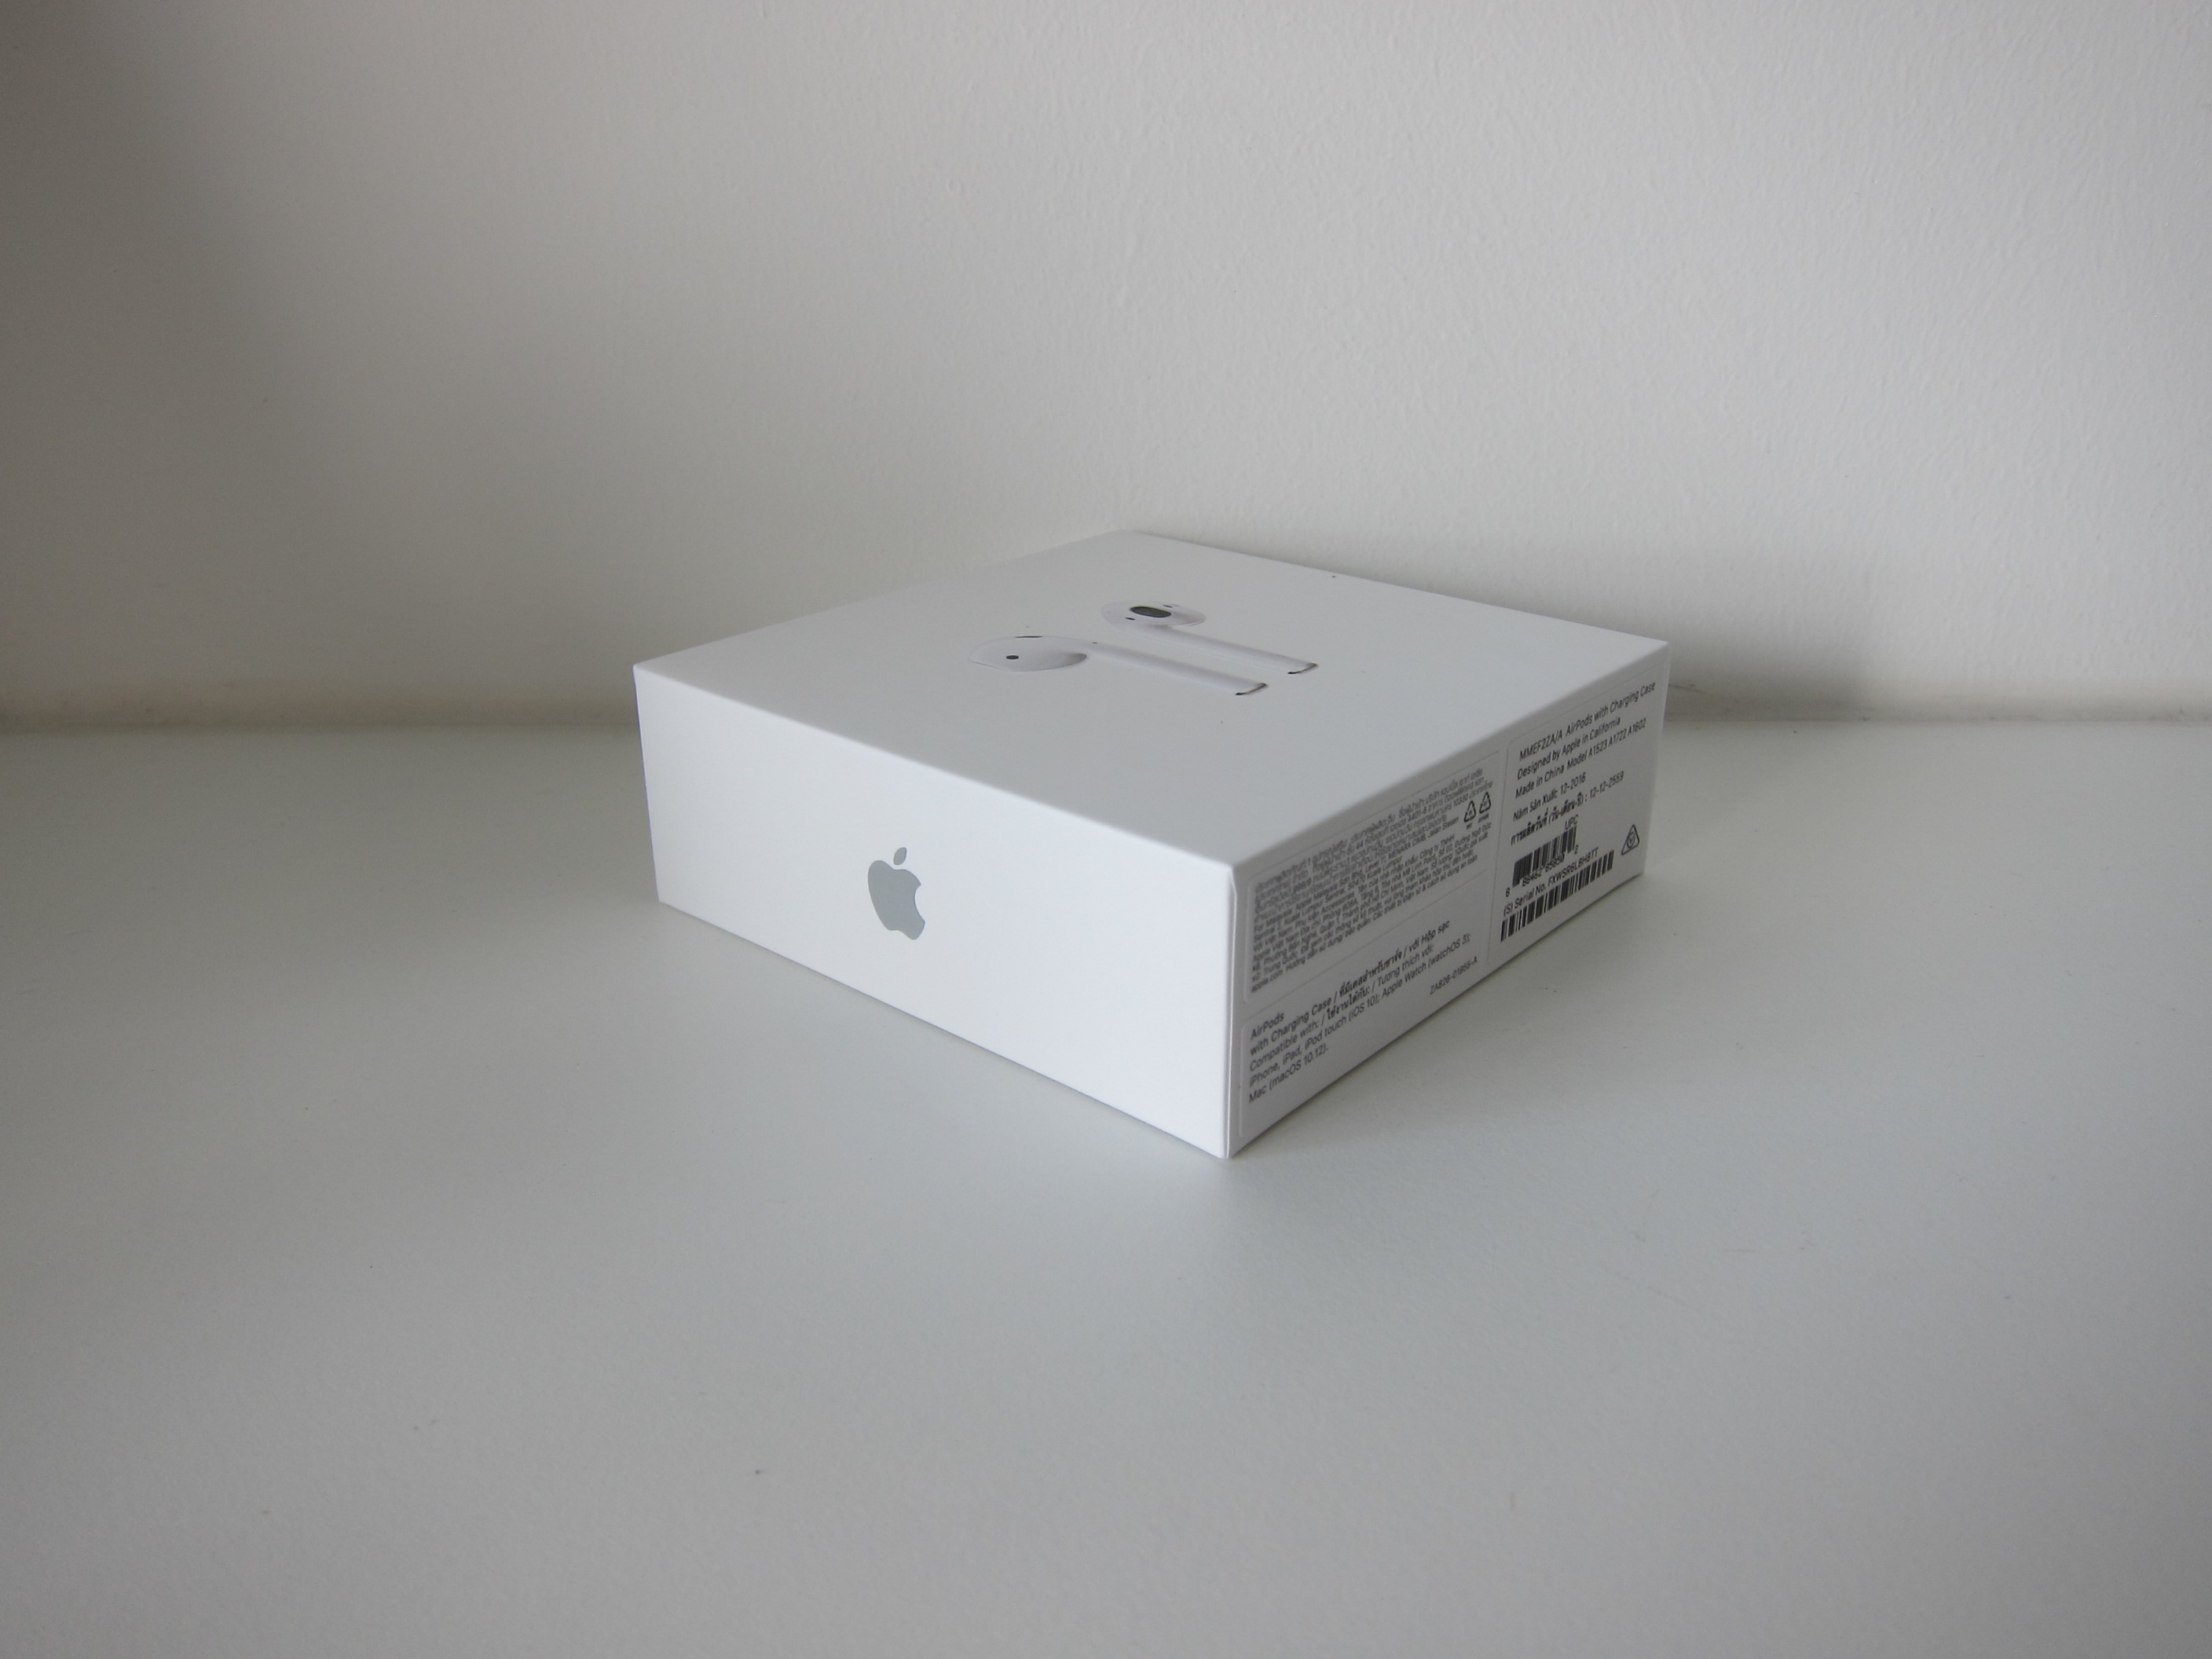 airpods box size in cm